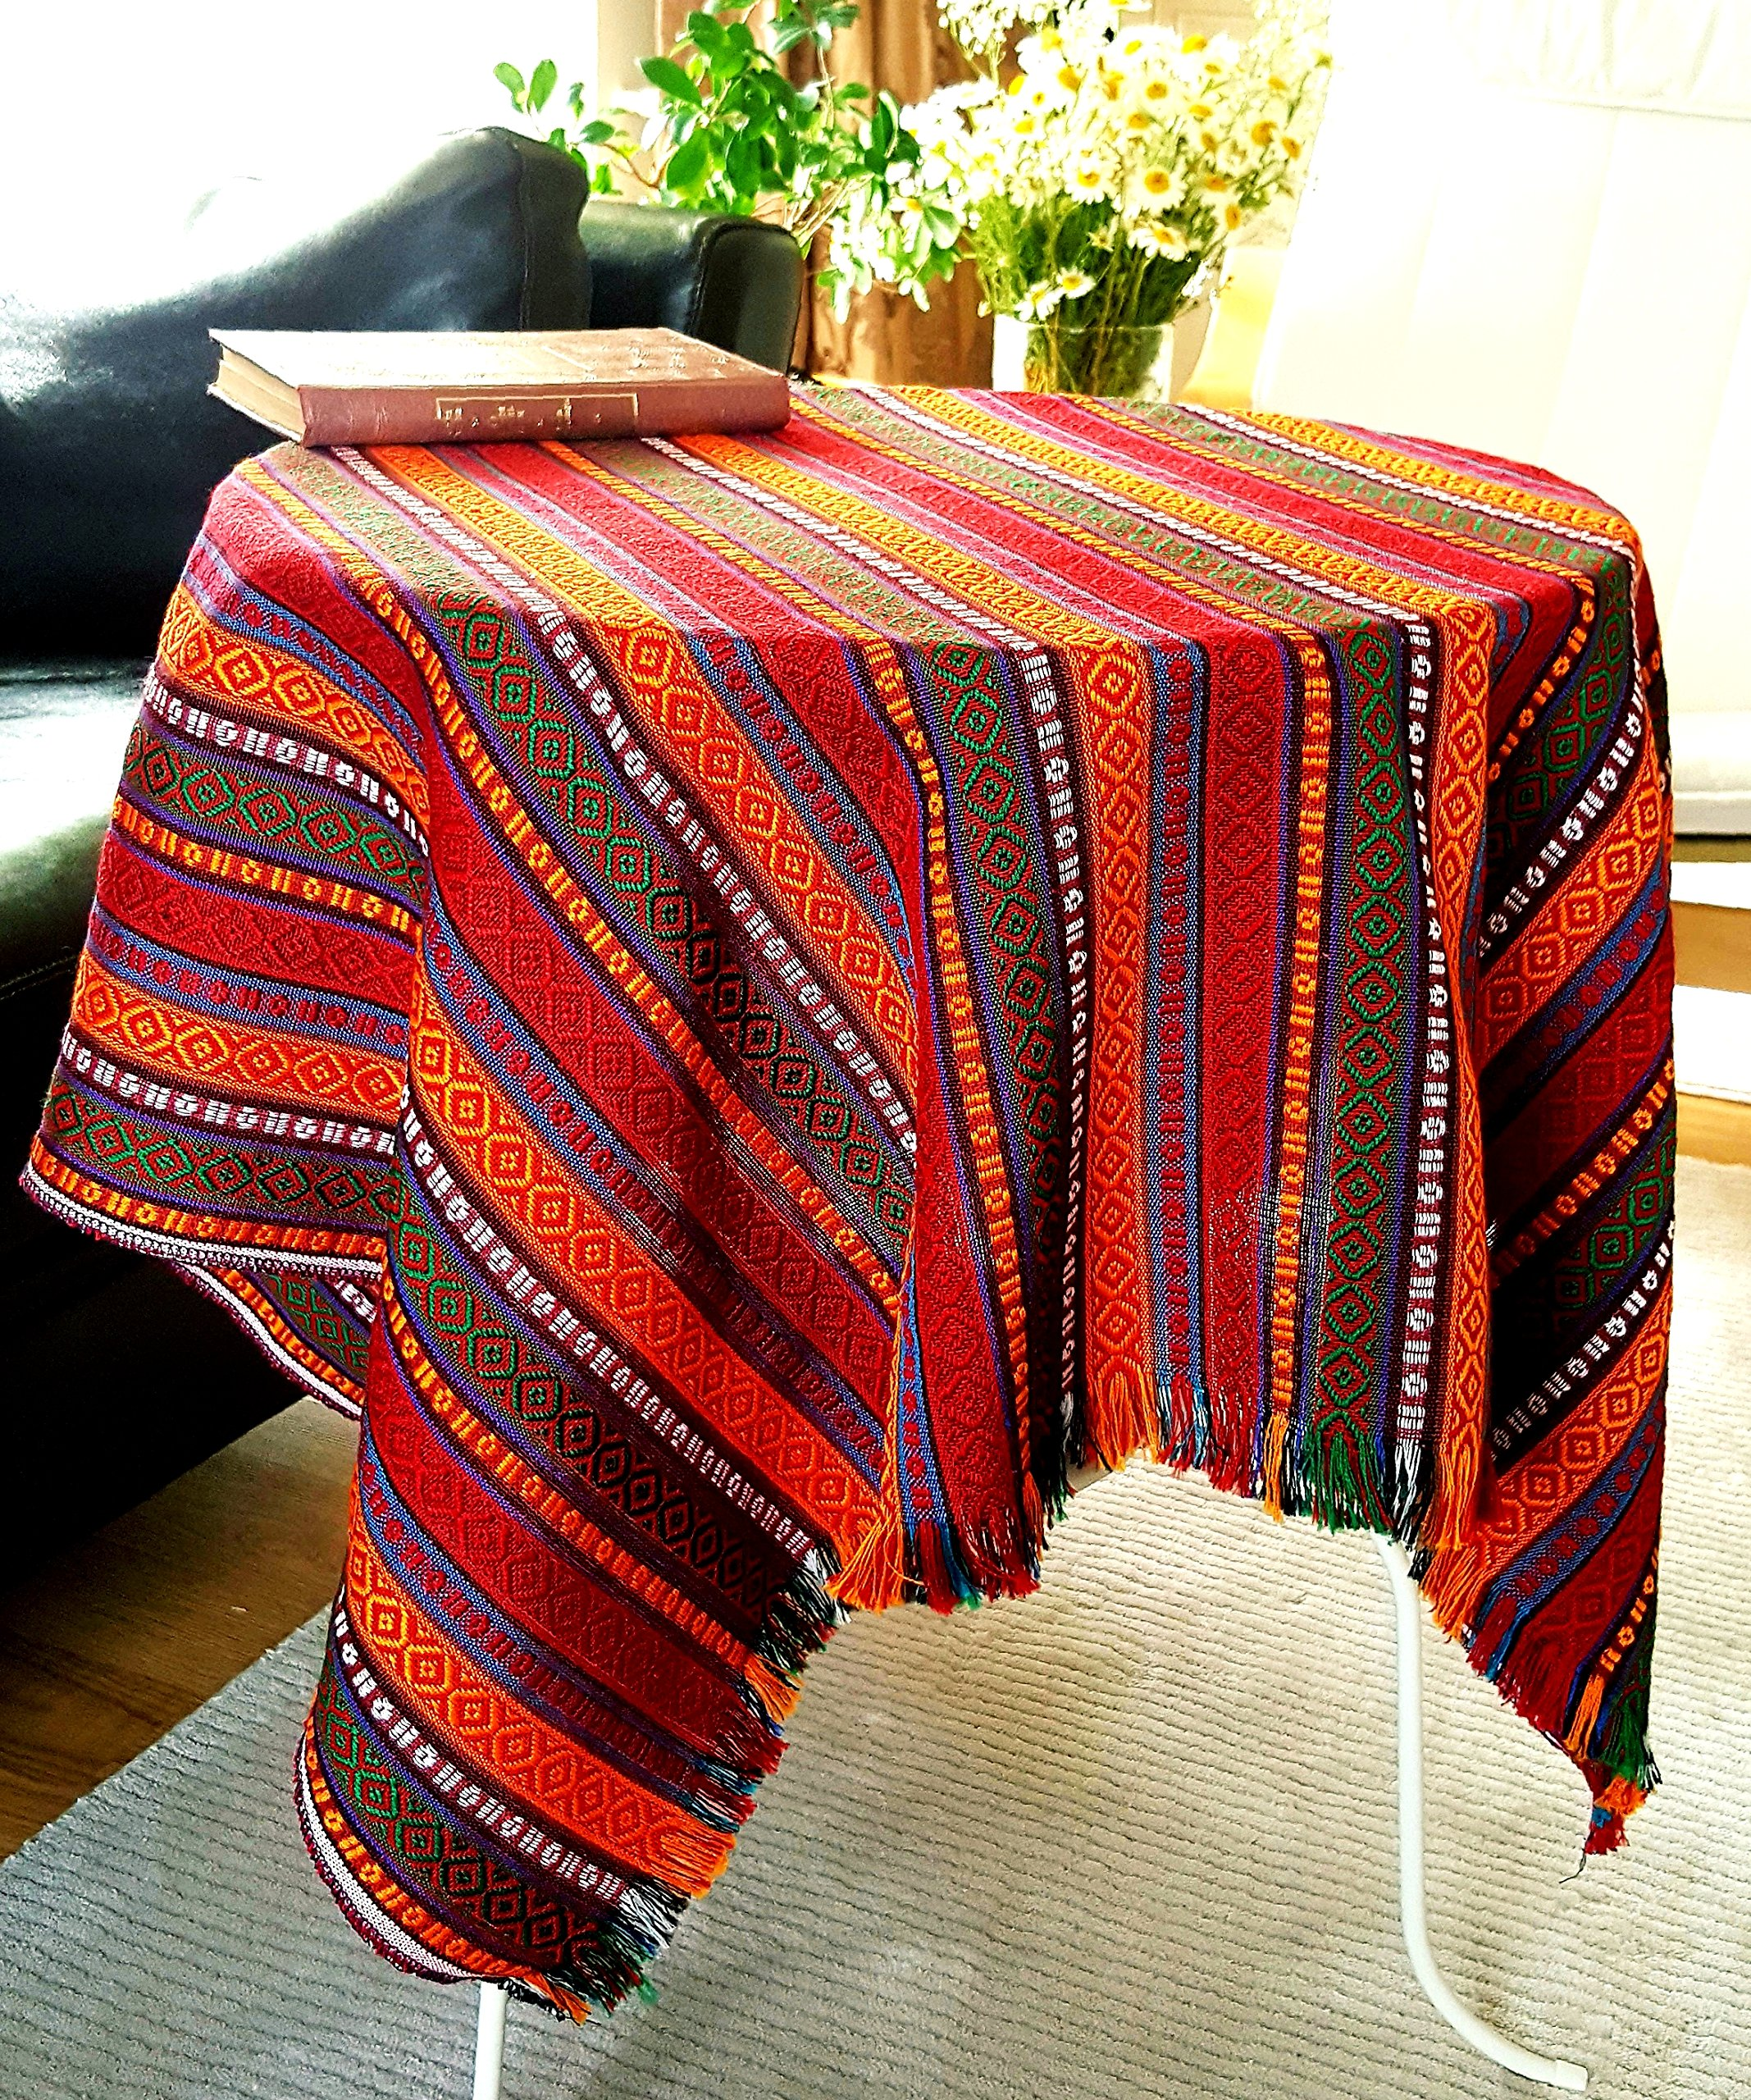 "Secret Sea Collection Bohemian Multicolor Striped Cotton Small Square Tablecloth, Picnic Outdoor Blanket, Throw, Washable, Reversible, Design: Hot Chili Sauce (40"" x 40"") - Vibrant colors and It's great quality fabric to suit your table better. The design is woven in, not printed for exceptional quality! Made in Turkey, Material: Cotton, Dimension: 40'' x 40'' inches (100x100 cm), Weight:0.88 lb, Shape: Square Versatile and Reversible, Perfect for end tables, side tables, balcony tables, outdoor picnic tables, Multiuse: tablecover, picnic blanket, cover, throw,any outdoor indoor event, play blanket, yoga blanket - tablecloths, kitchen-dining-room-table-linens, kitchen-dining-room - A1wrk QD1FL -"